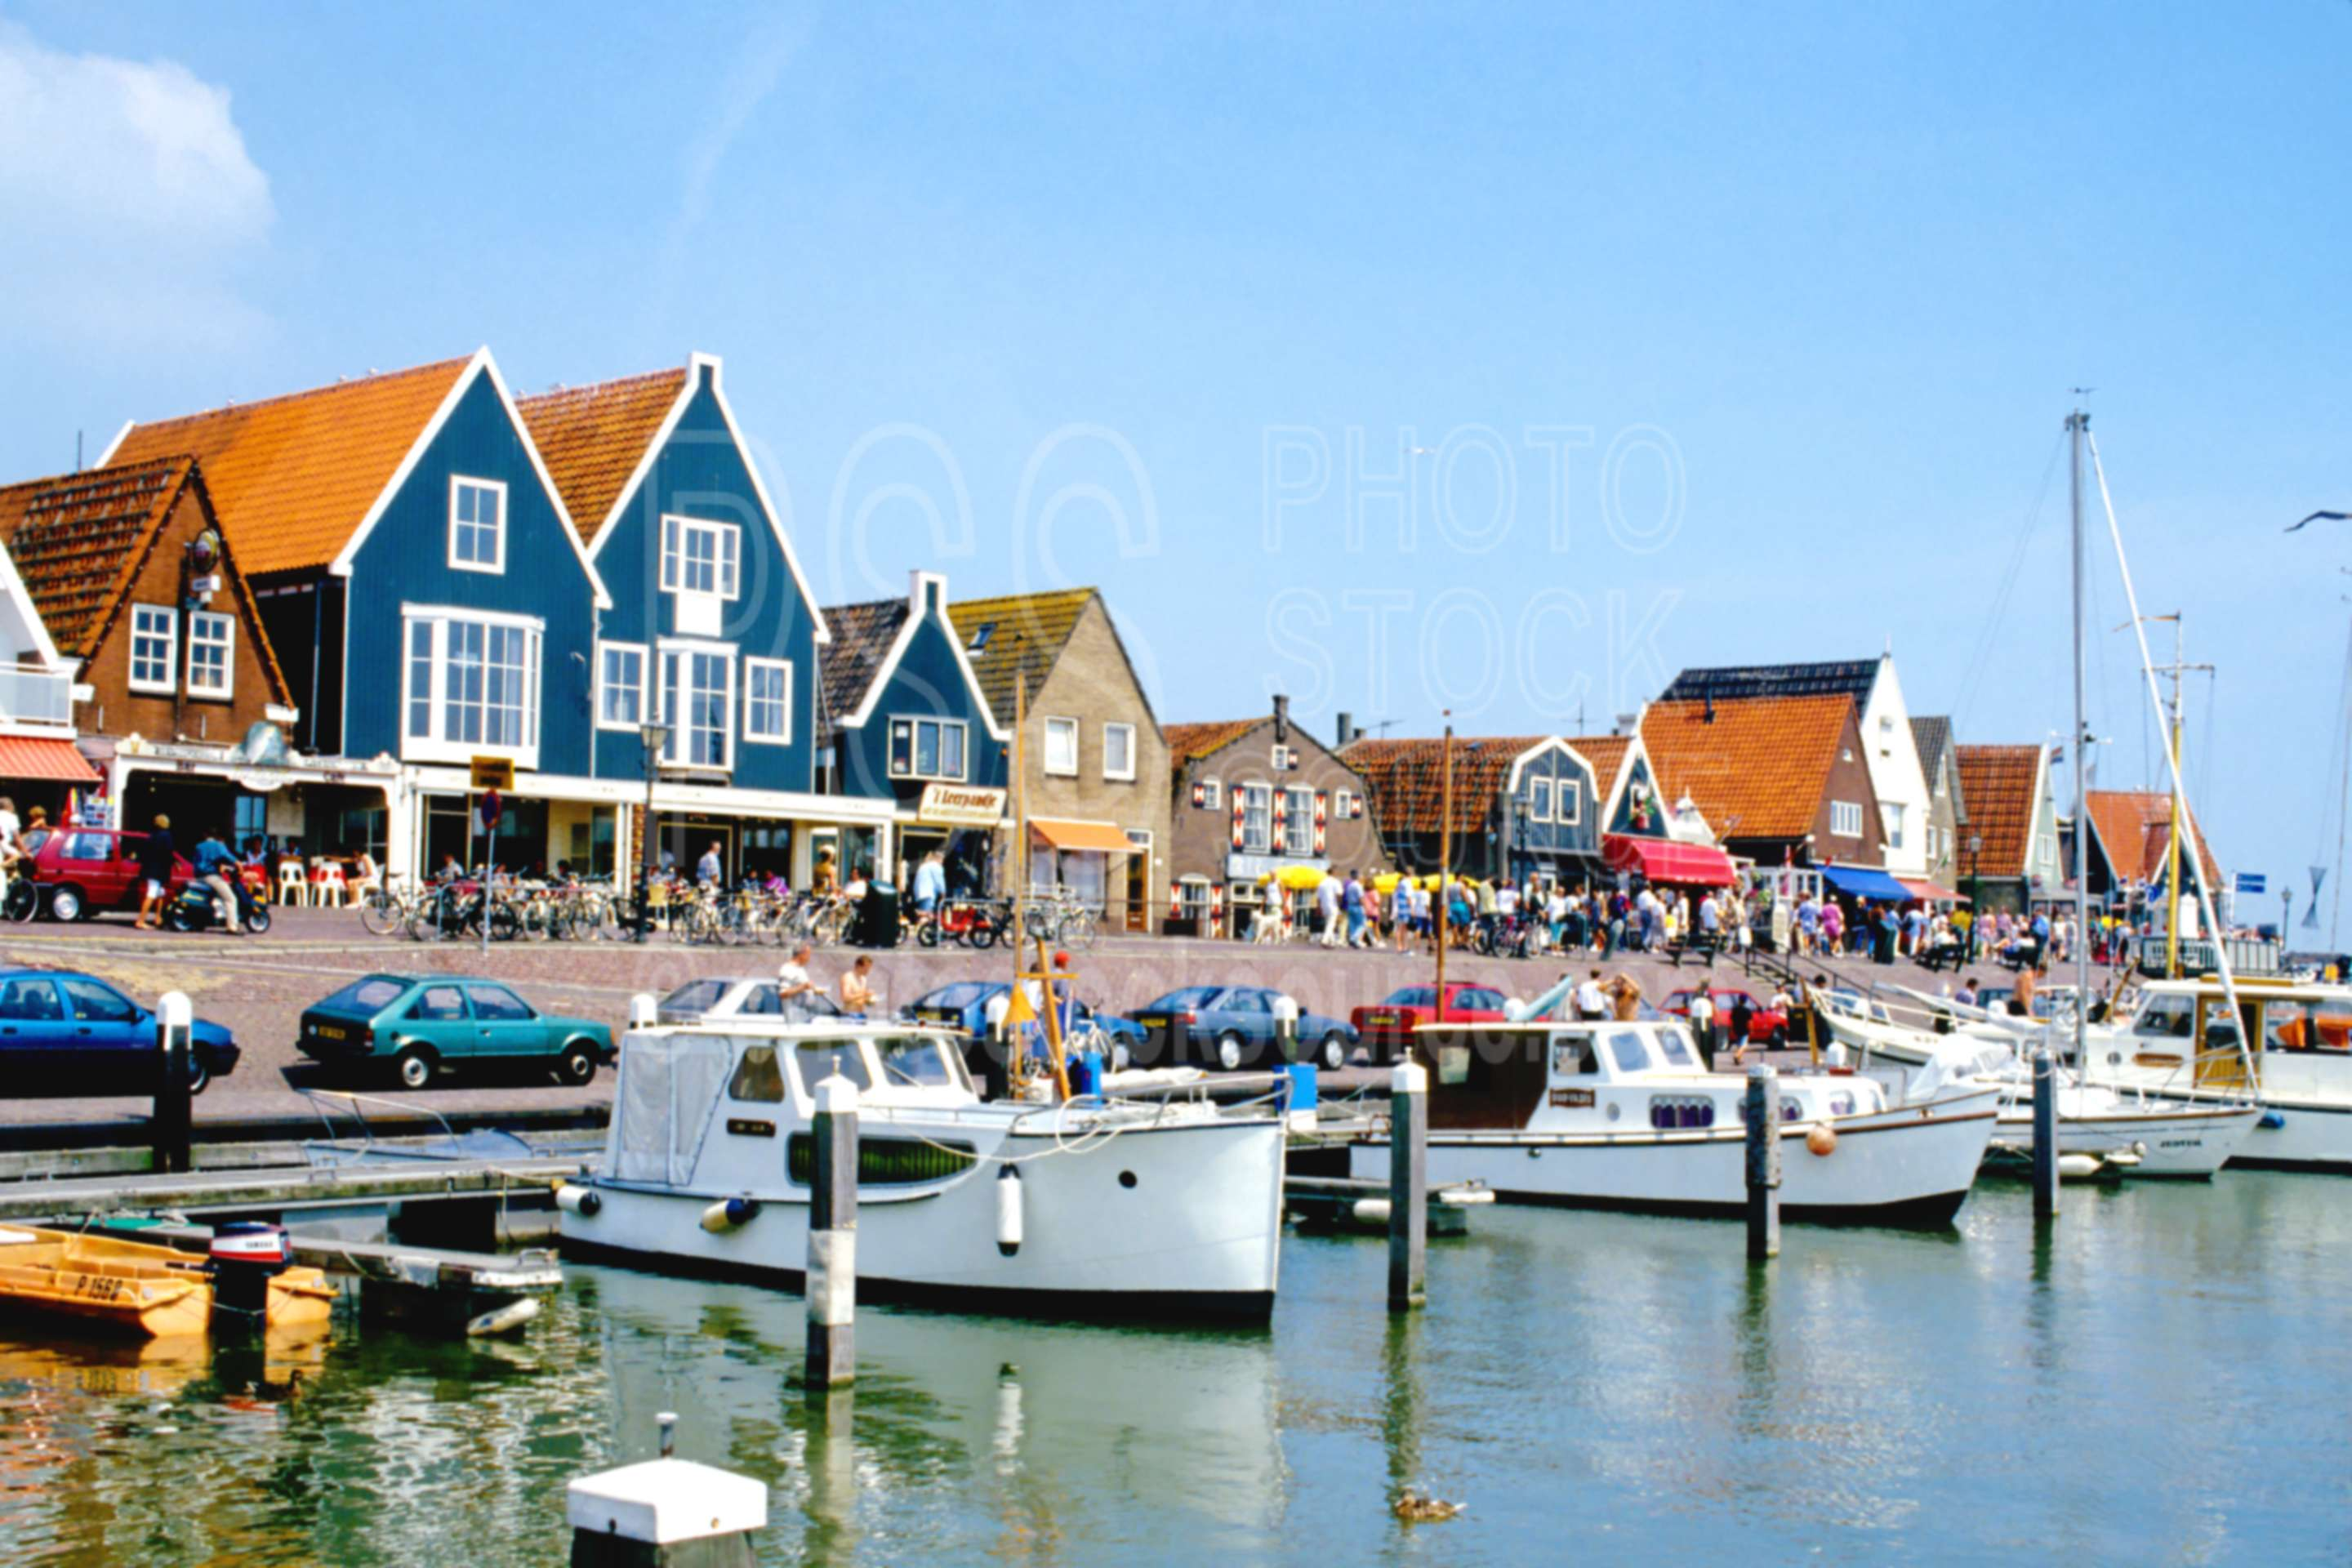 Waterfront,europe,holland,boats